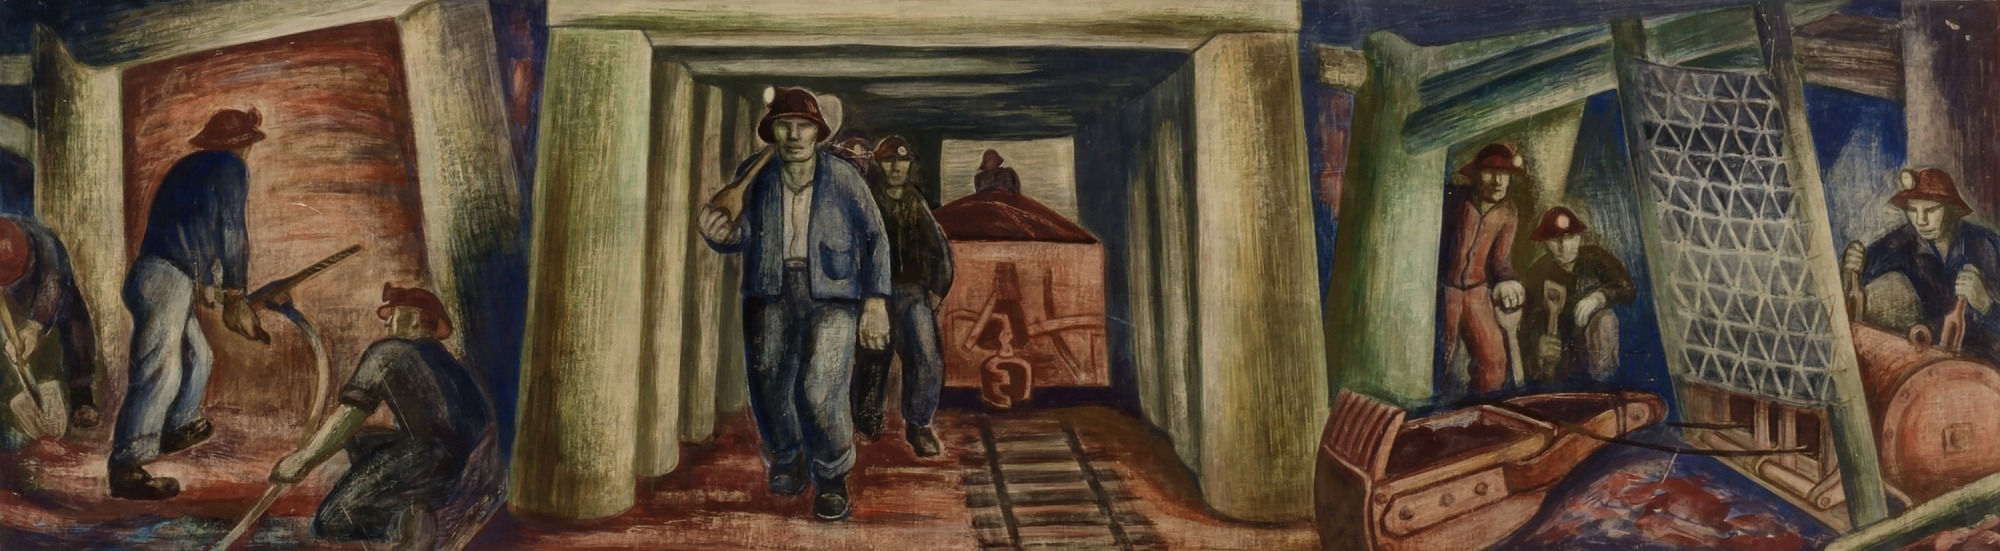 images for Iron Ore Mines (Ely, study for mural)